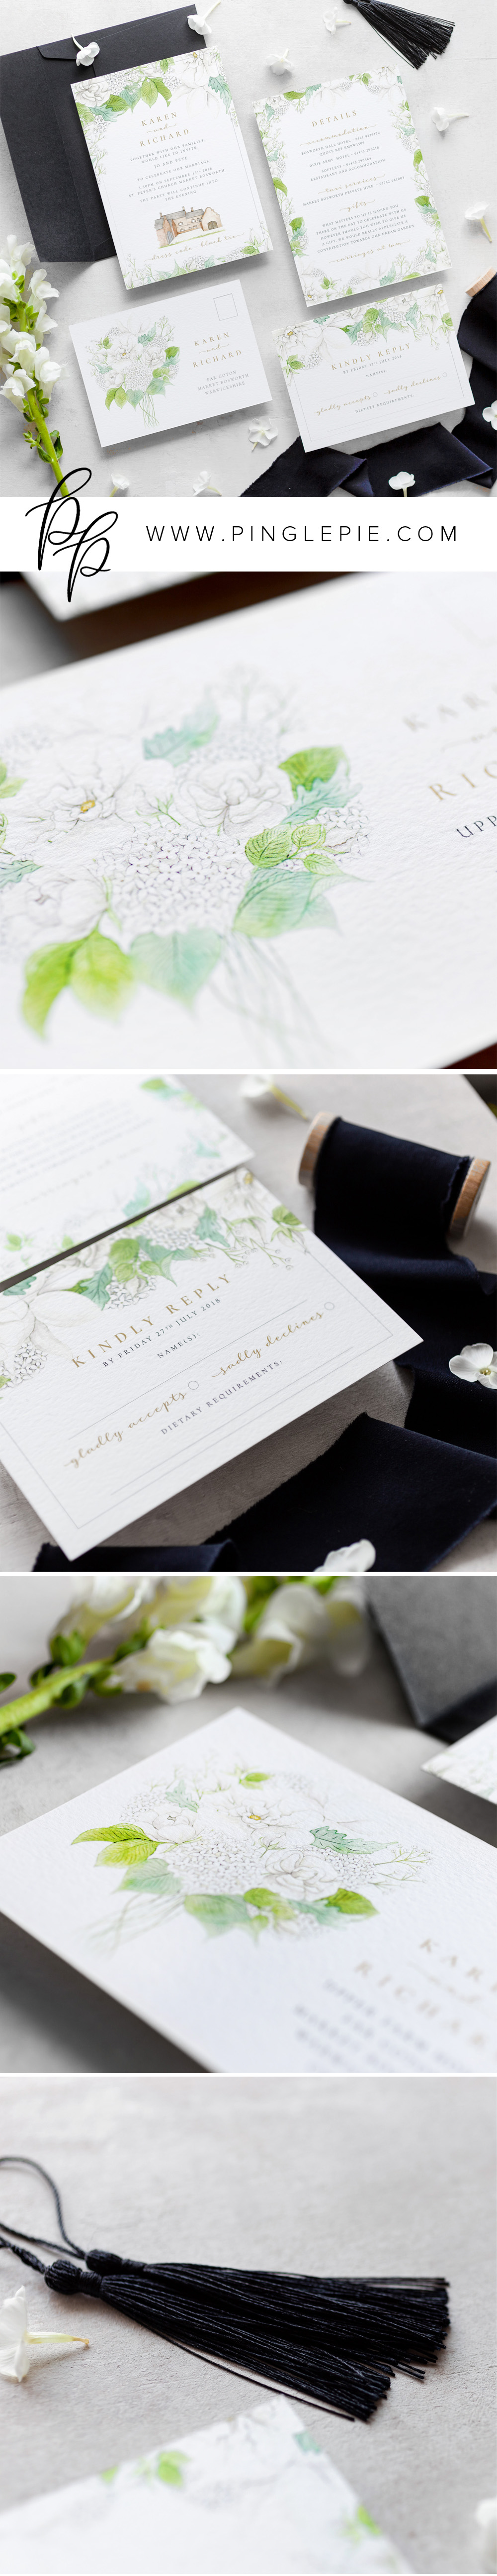 Bespoke Wedding Invite - Botanical Wedding Stationery - Pingle Pie